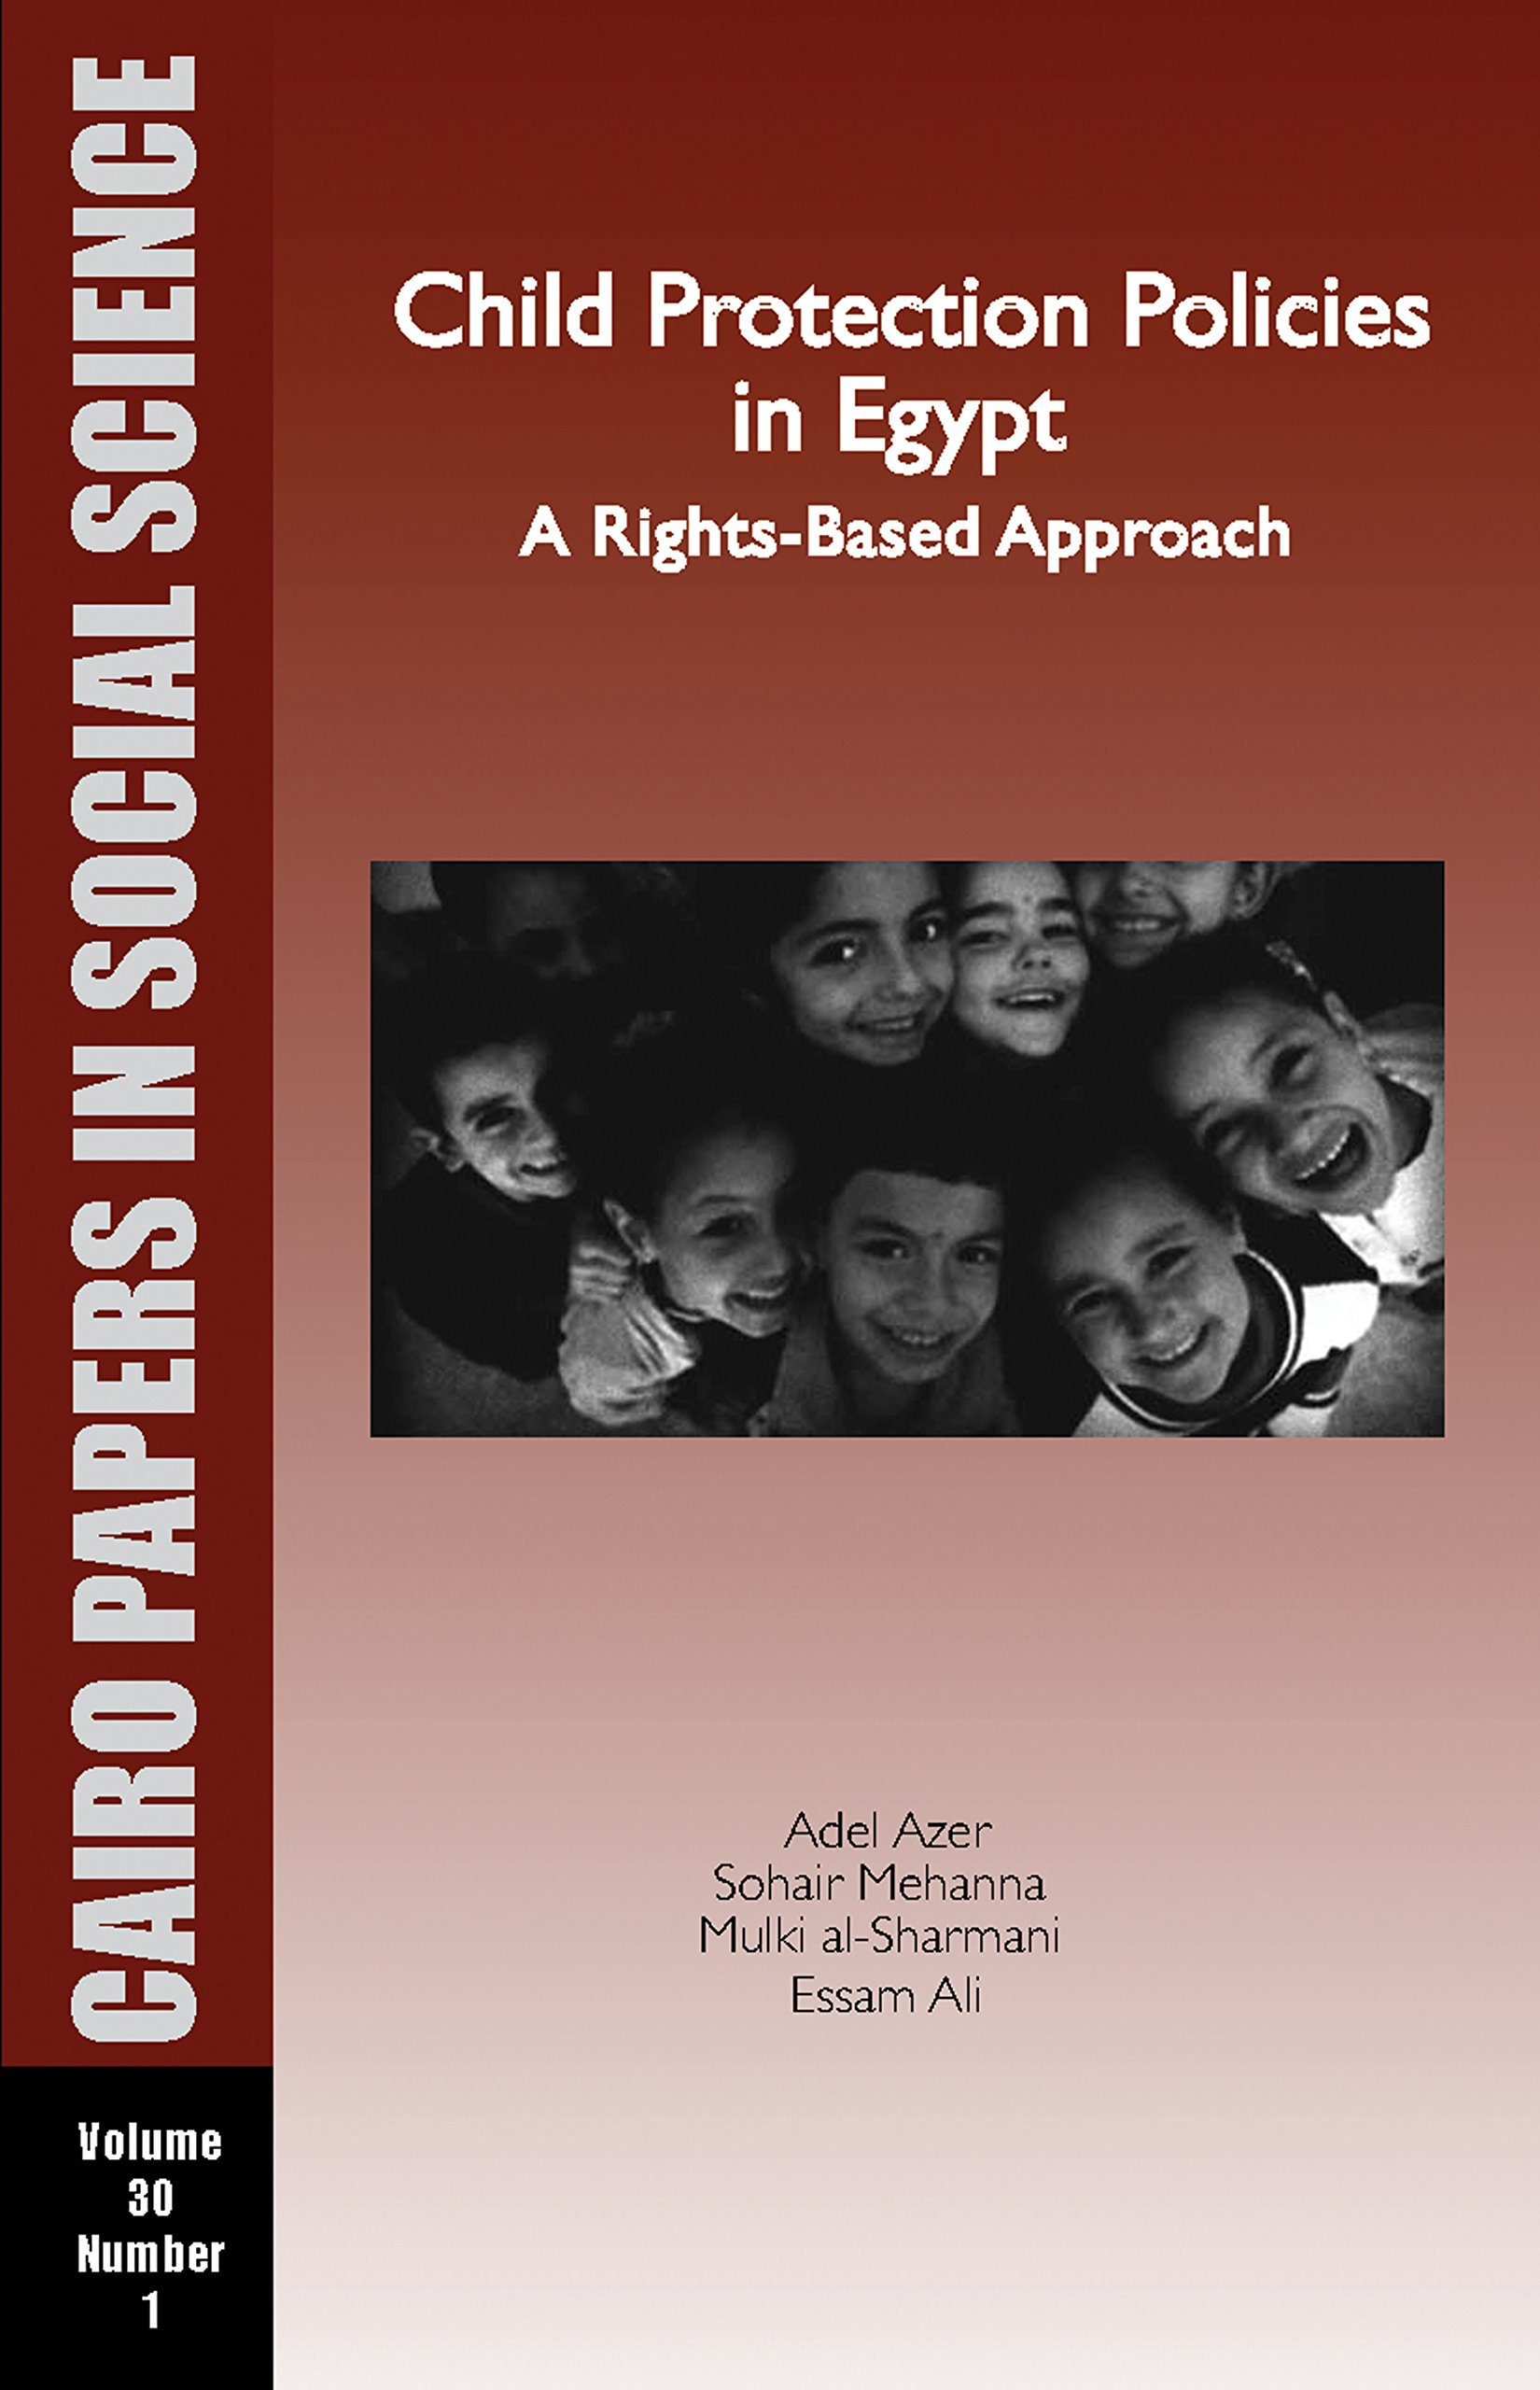 Download Child Protection Policies in Egypt: A Rights-Based Approach: Cairo Papers Vol. 30, No. 1 (Cairo Papers in Social Science, Spring 2007) pdf